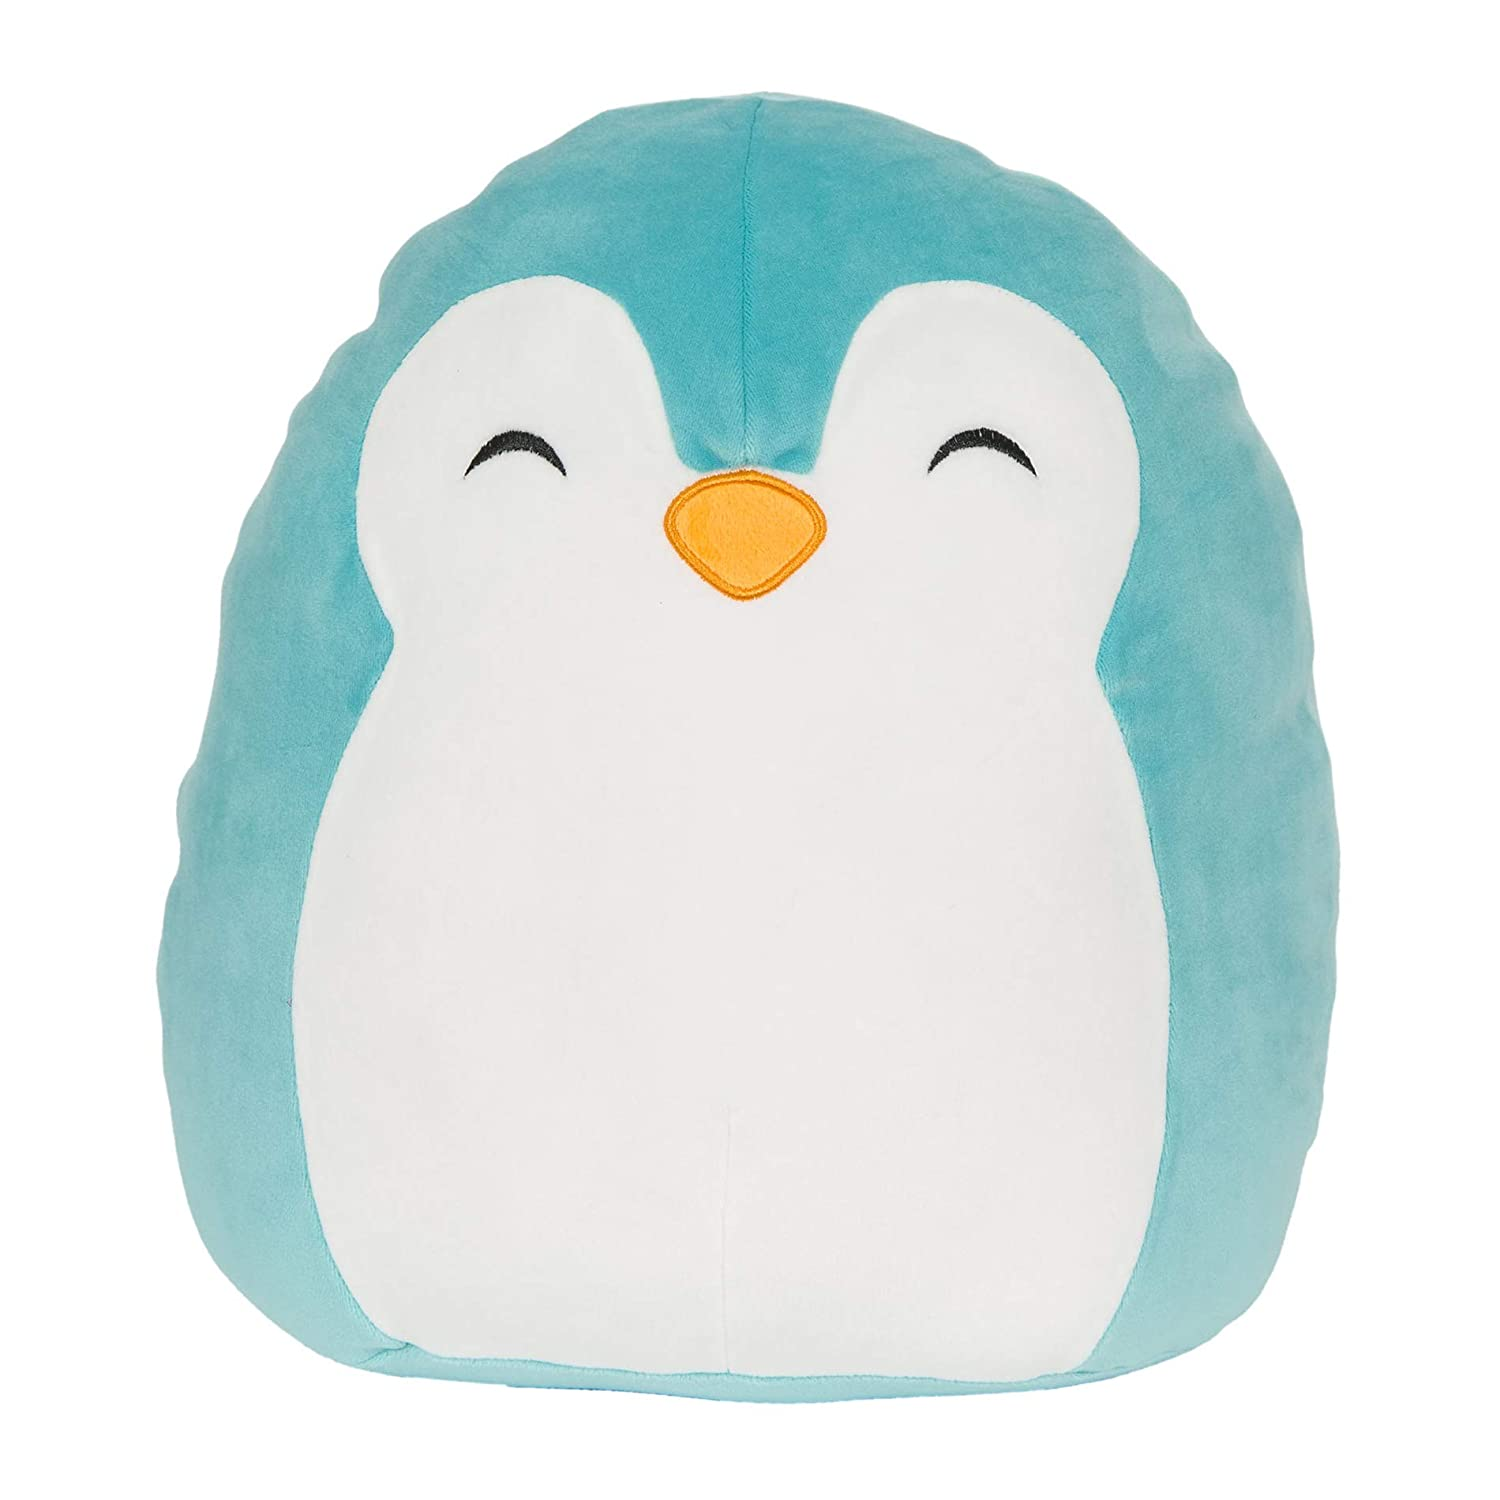 Hug Or Use As A Pillow 16 inch Tanner The Teal Penguin Squishmallow Plush Cuddle